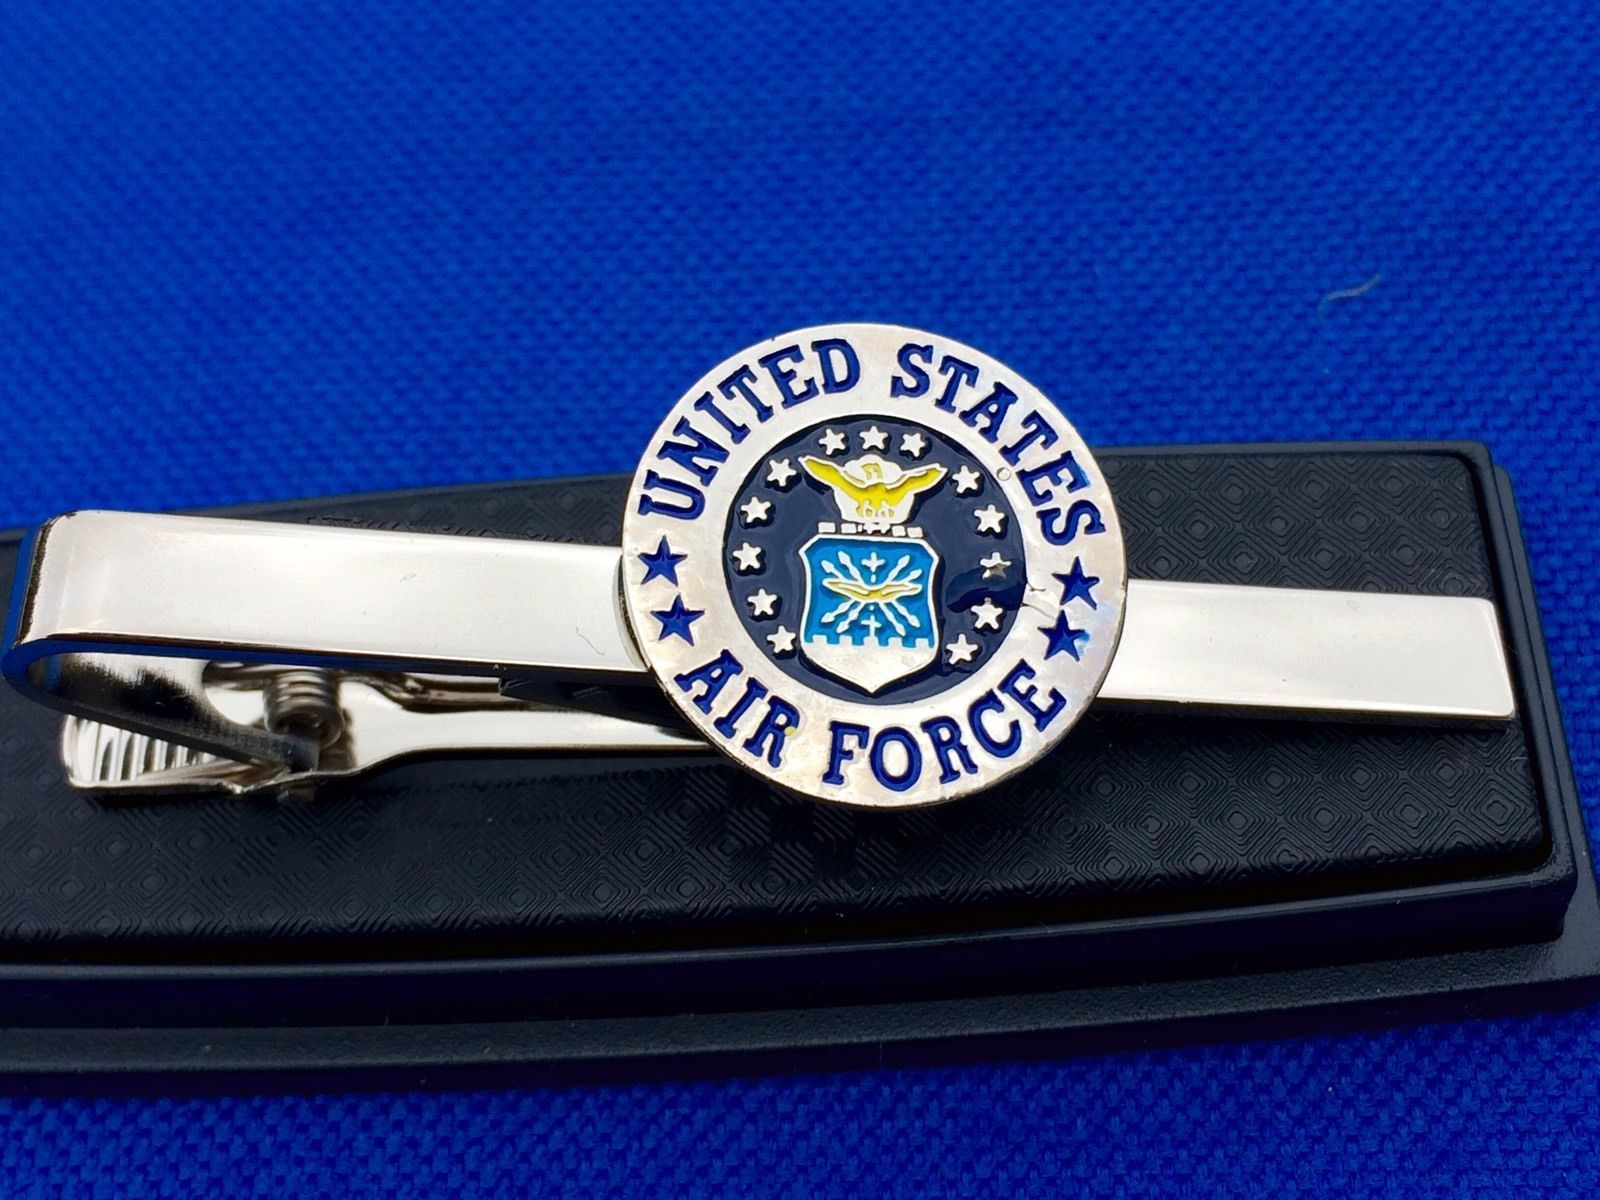 U.S. AIR FORCE USA MARINE CORPS GIFT TIE CLIP CLASP PIN ...